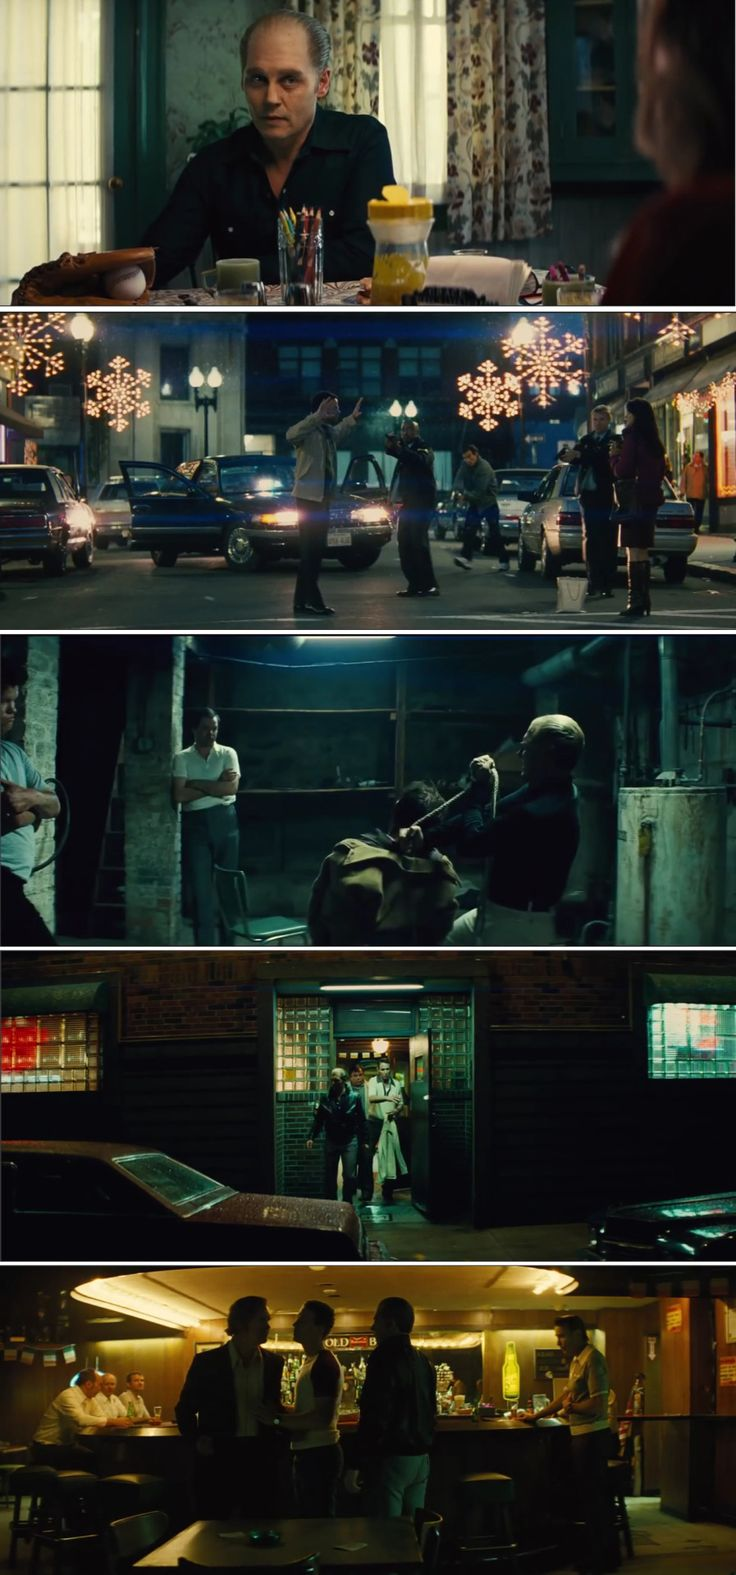 black mass cinema photography and color grading #color grading #cinema…